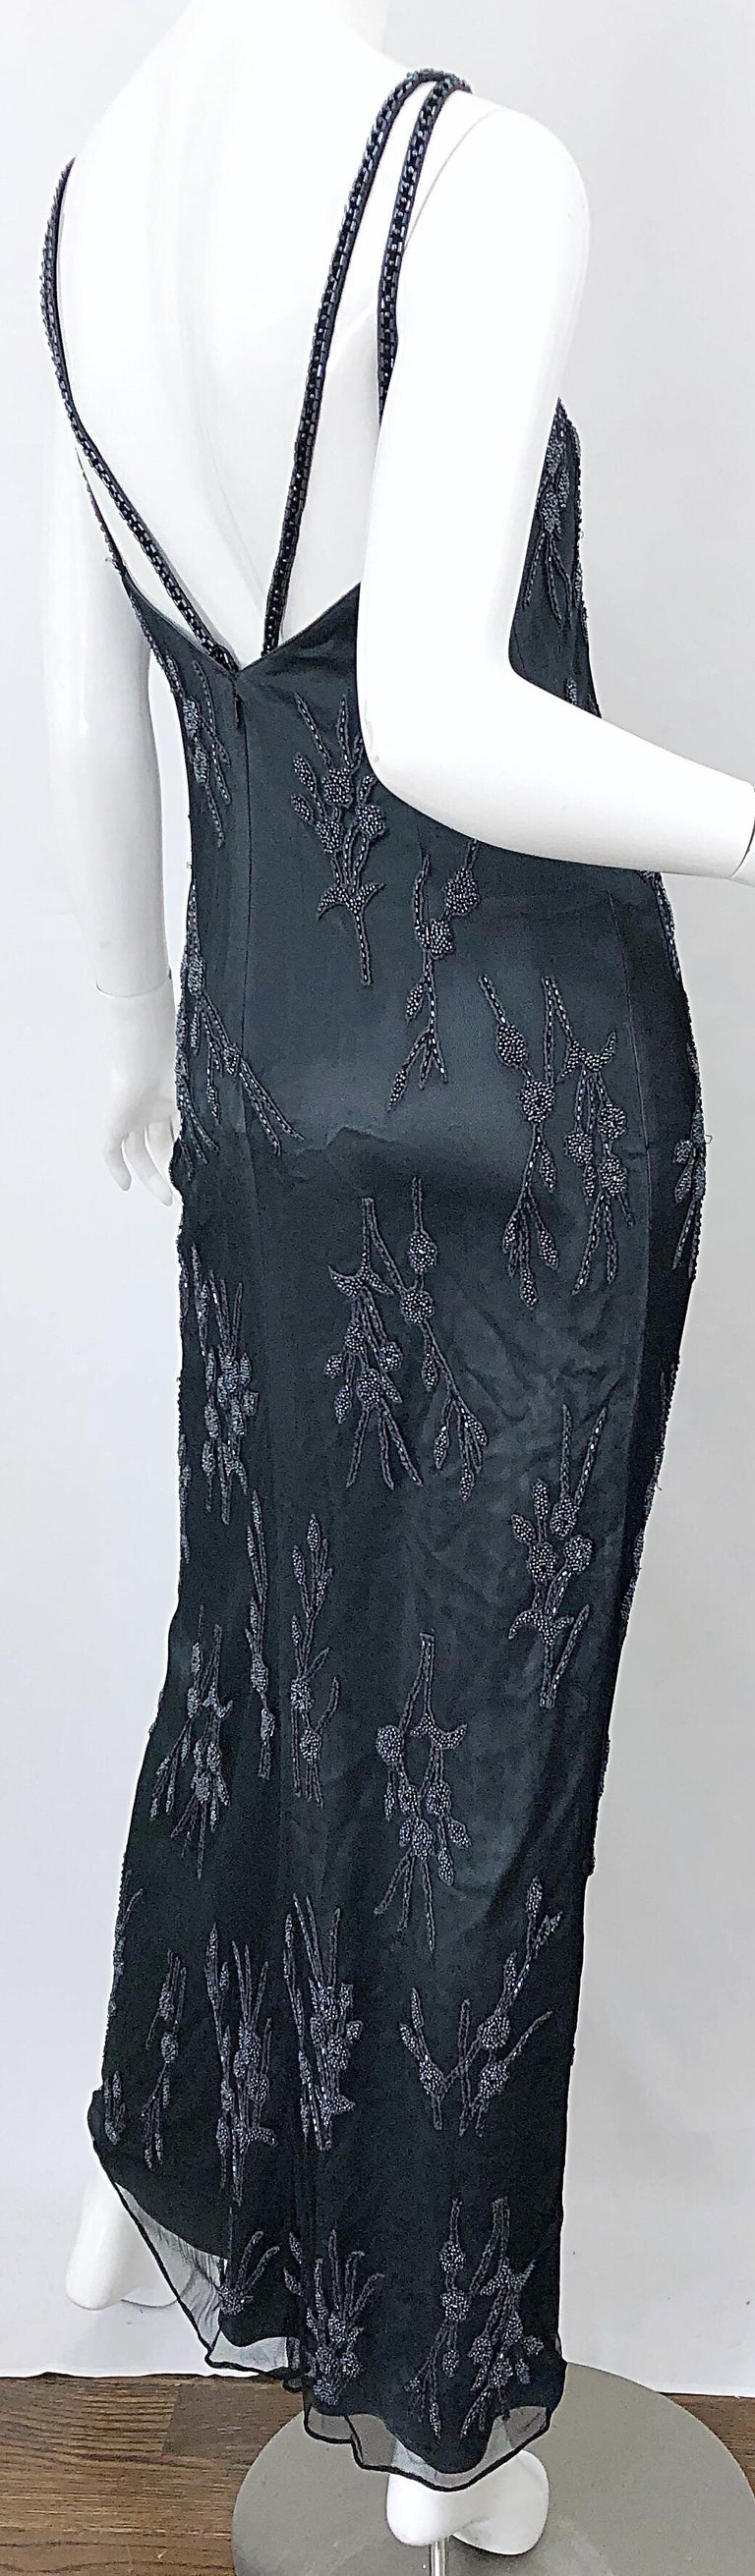 Vintage Bob Mackie Size 8 Grey Beaded 1990s Sequin Sleeveless 90s Evening Gown For Sale 3